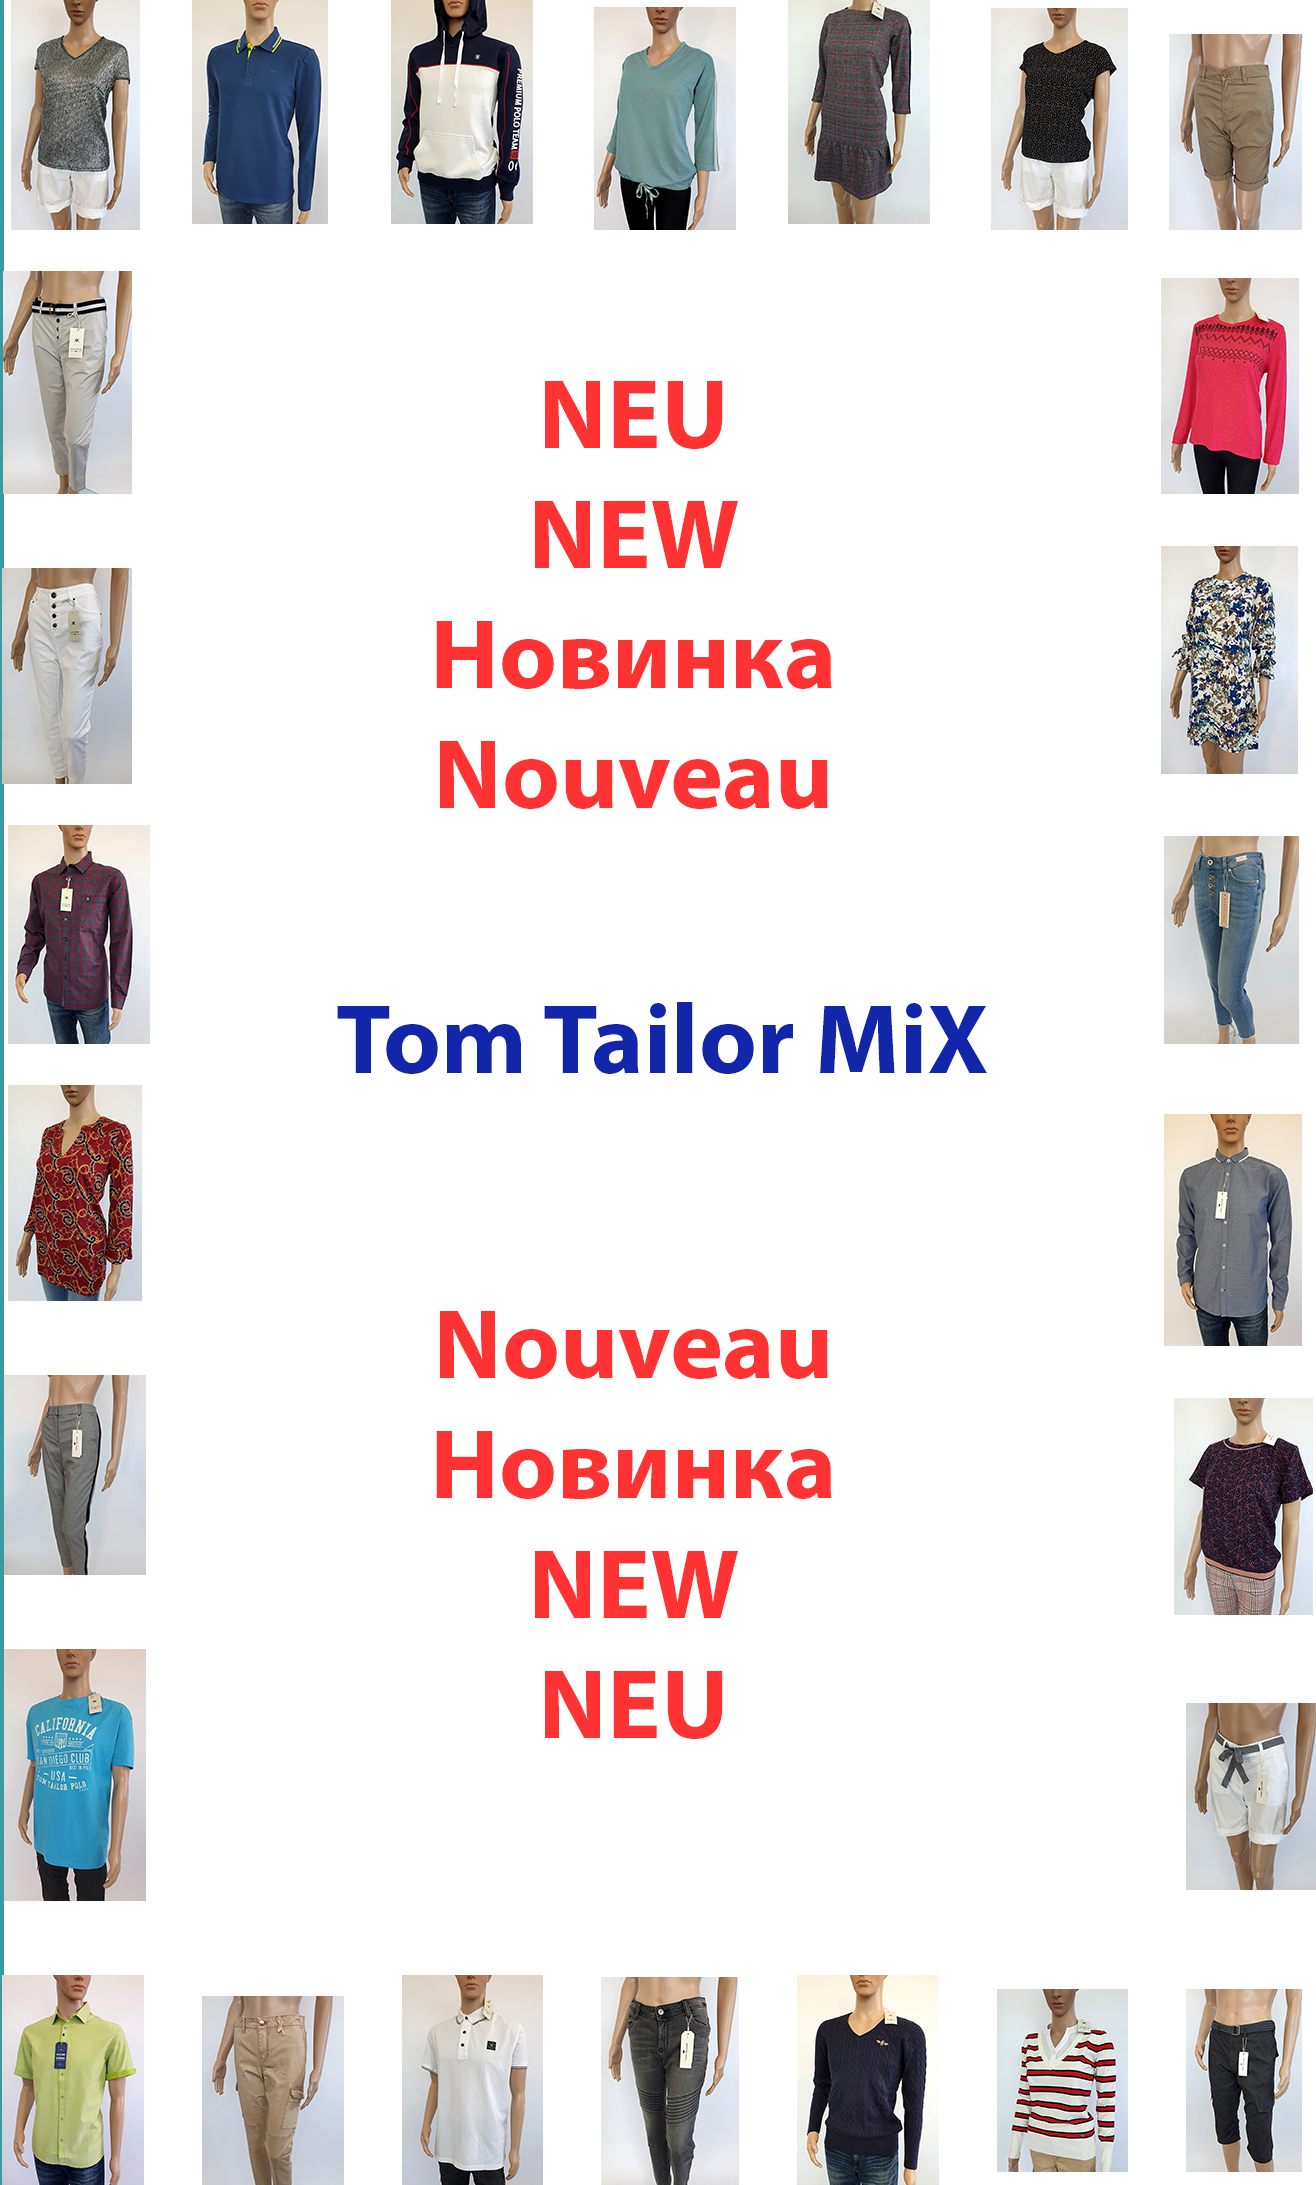 Tom Tailor MIX